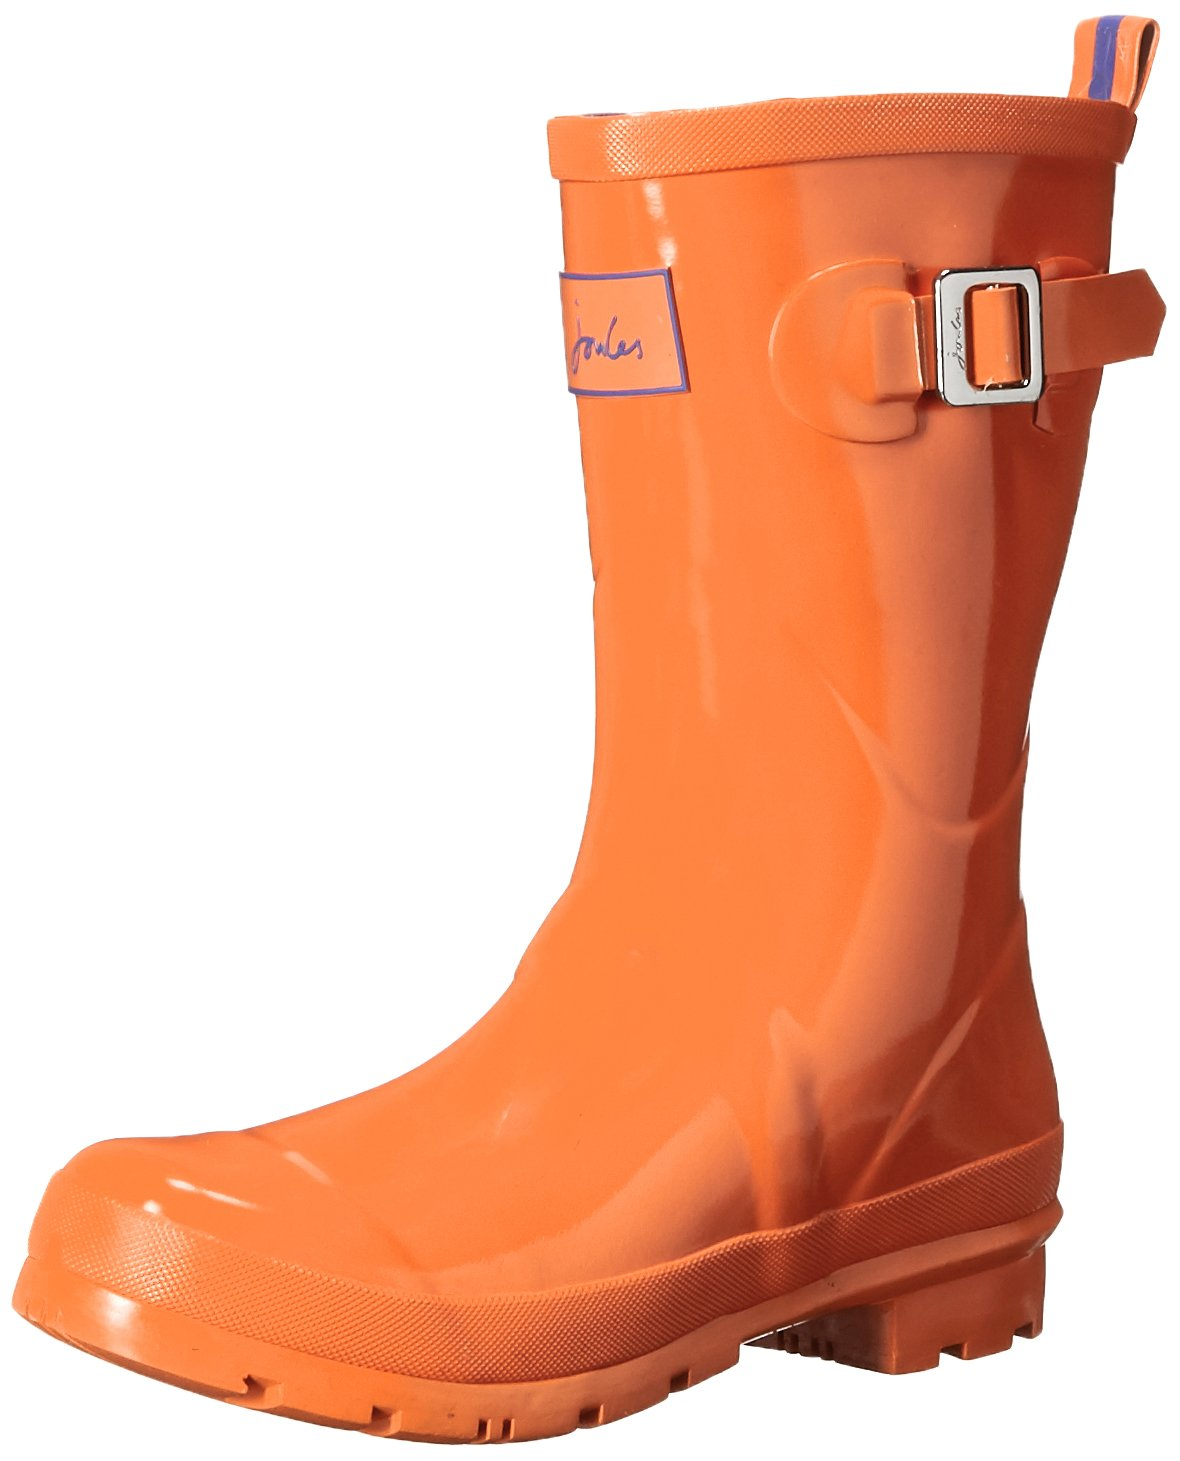 Joules Women's Kelly Welly Gloss Rain Boot B015JAIU9I 6 B(M) US|Orange